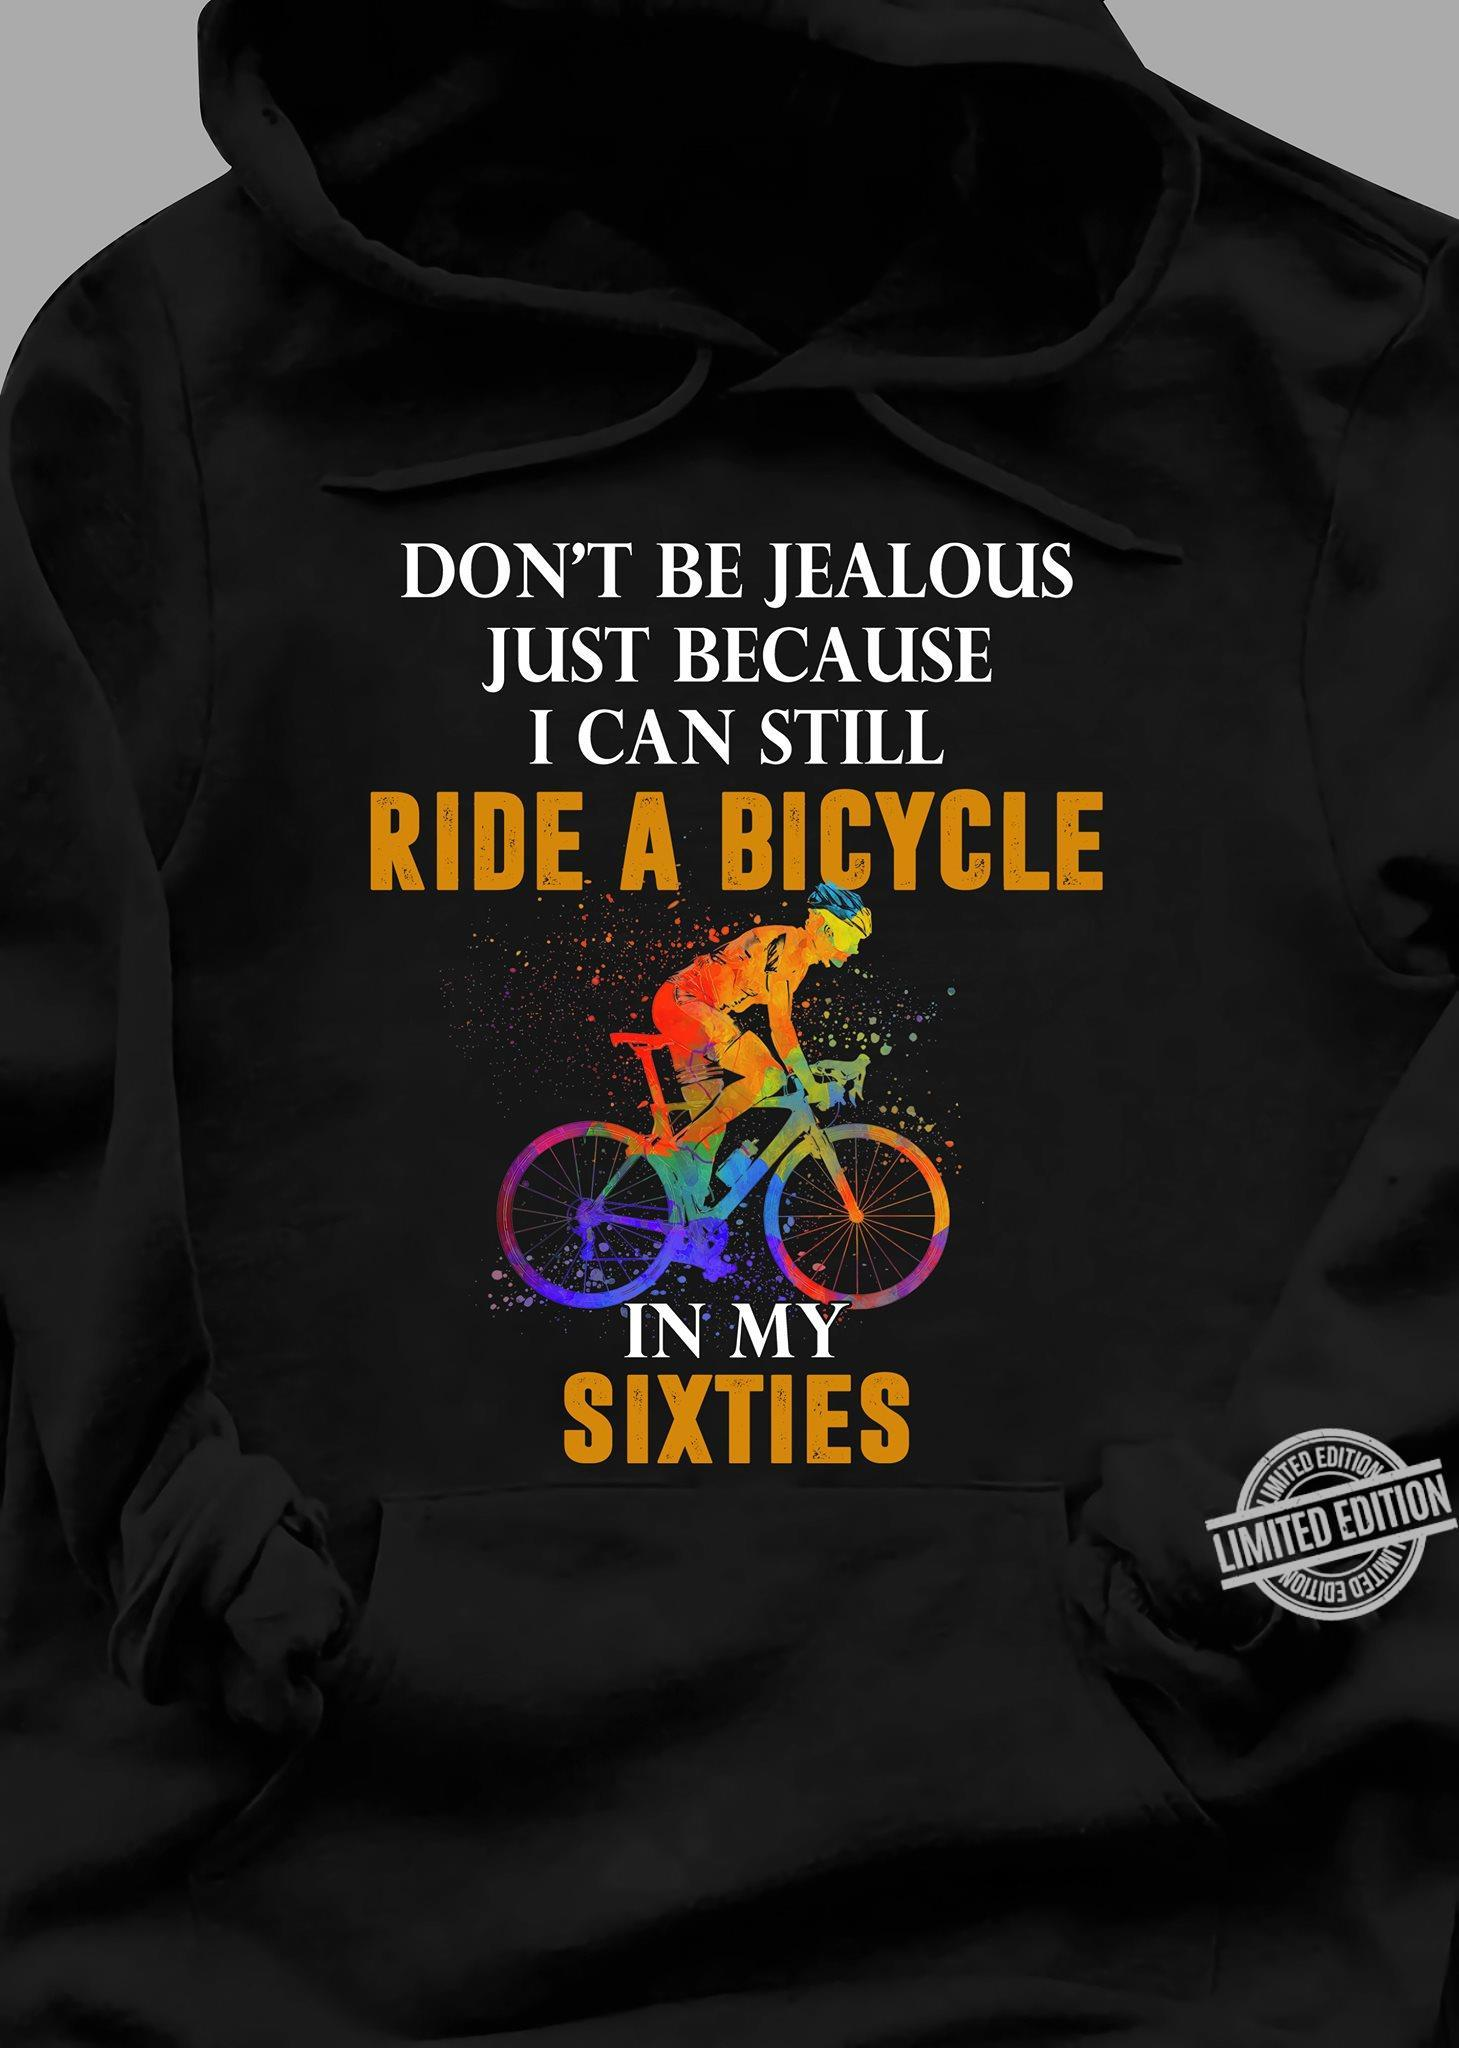 Don't Be Jealous Just Because Ride A Bicycle In My Sixties Shirt